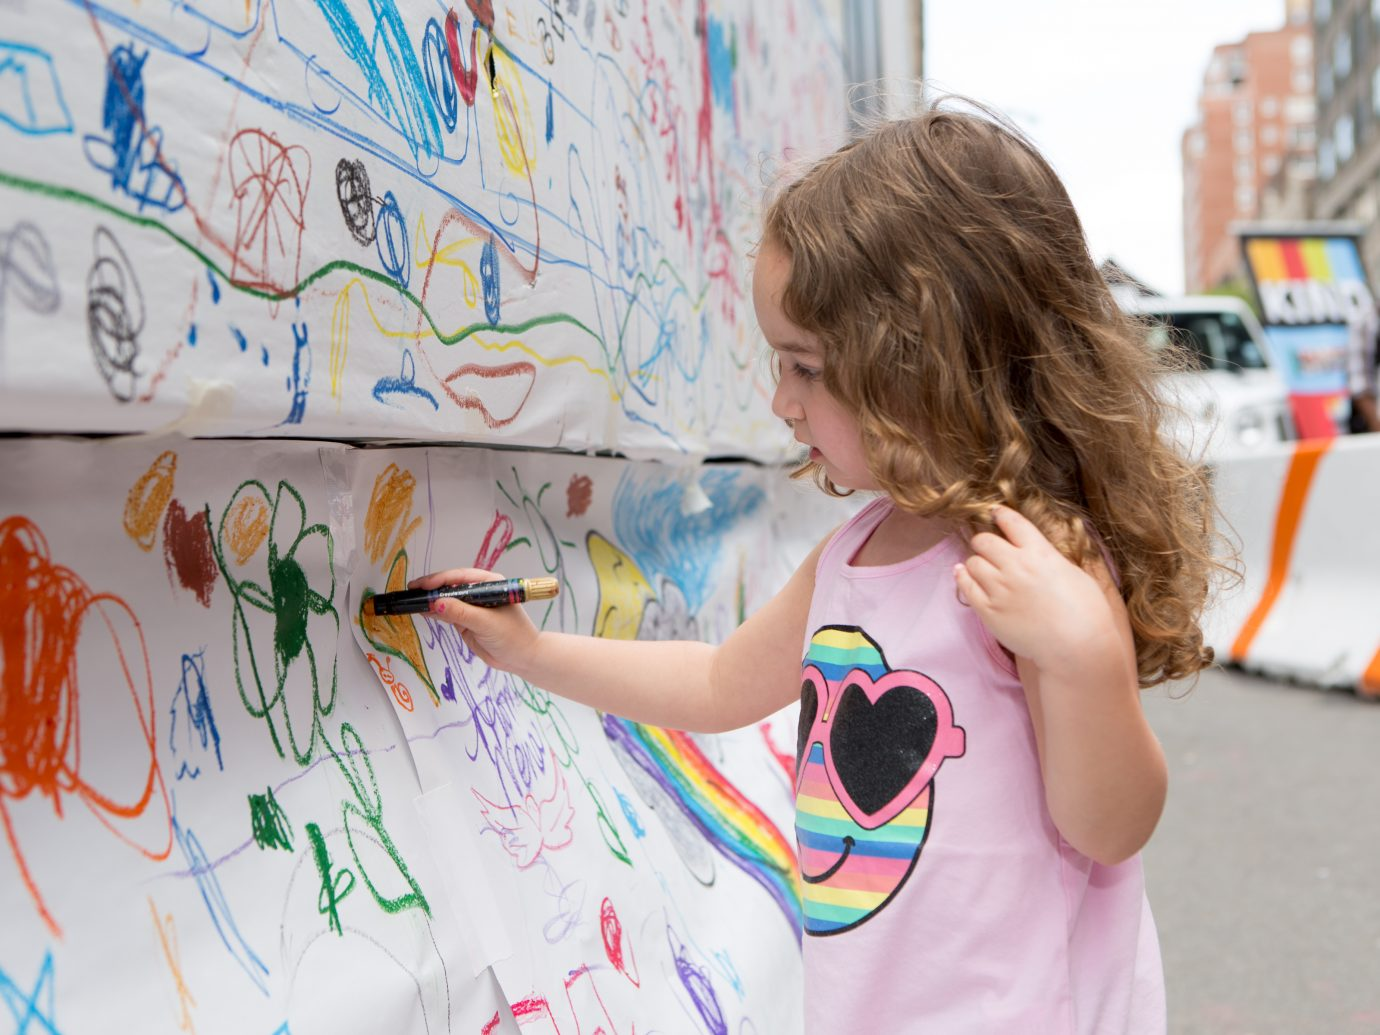 little girl drawing on paper attached to wall